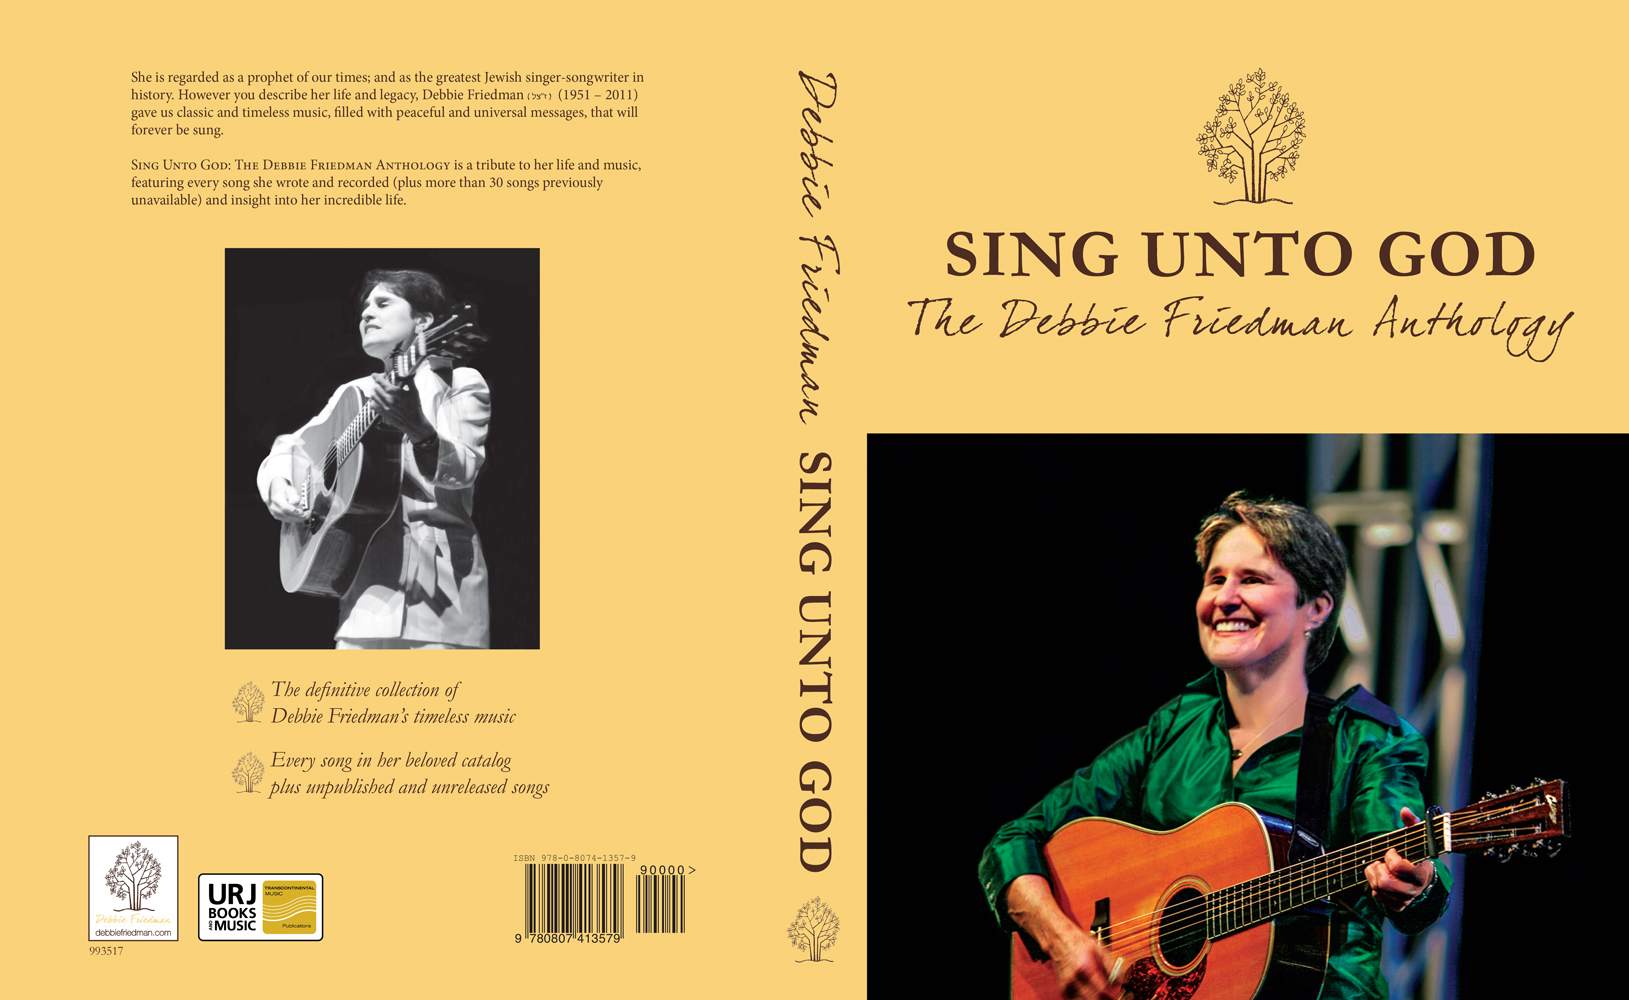 SING UNTO GOD: THE DEBBIE FRIEDMAN ANTHOLOGY is a nearly 500-page master collection of Debbie's entire music catalog. It features lay-flat binding to make music stand or bimah usage easier.